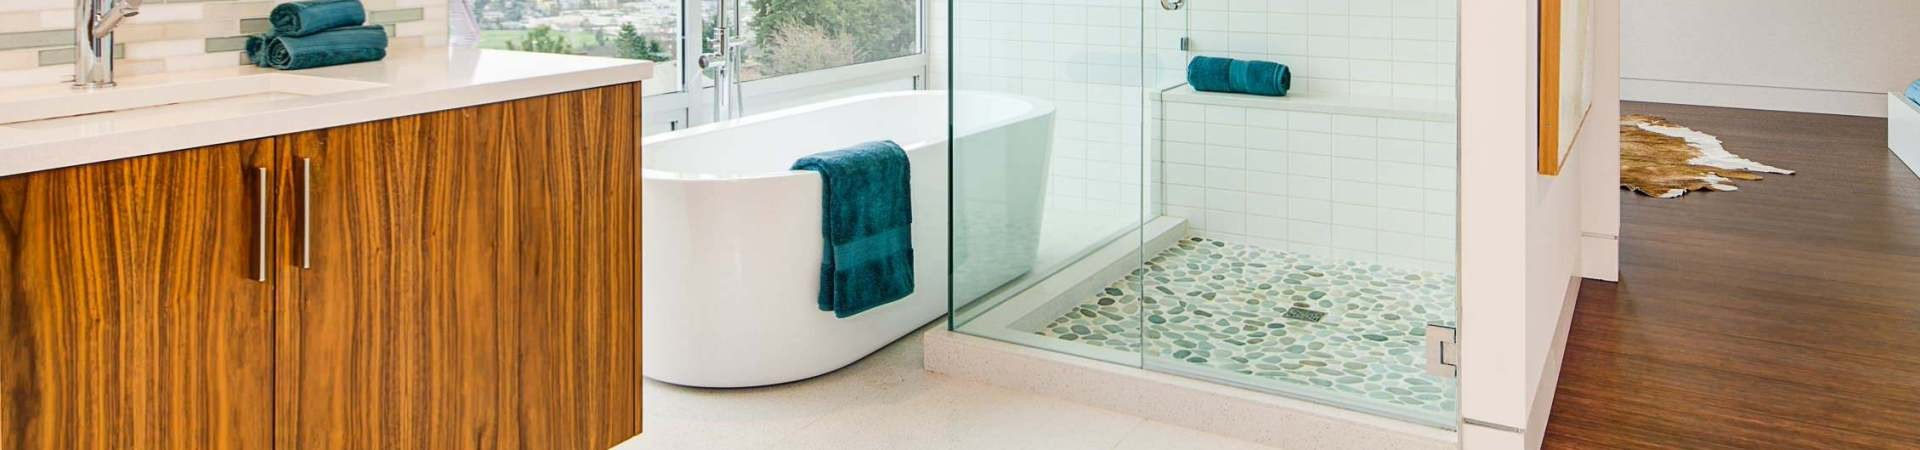 MFC Bathroom Cabinet and MFC Bathroom Cabinet Manufacturers & Suppliers